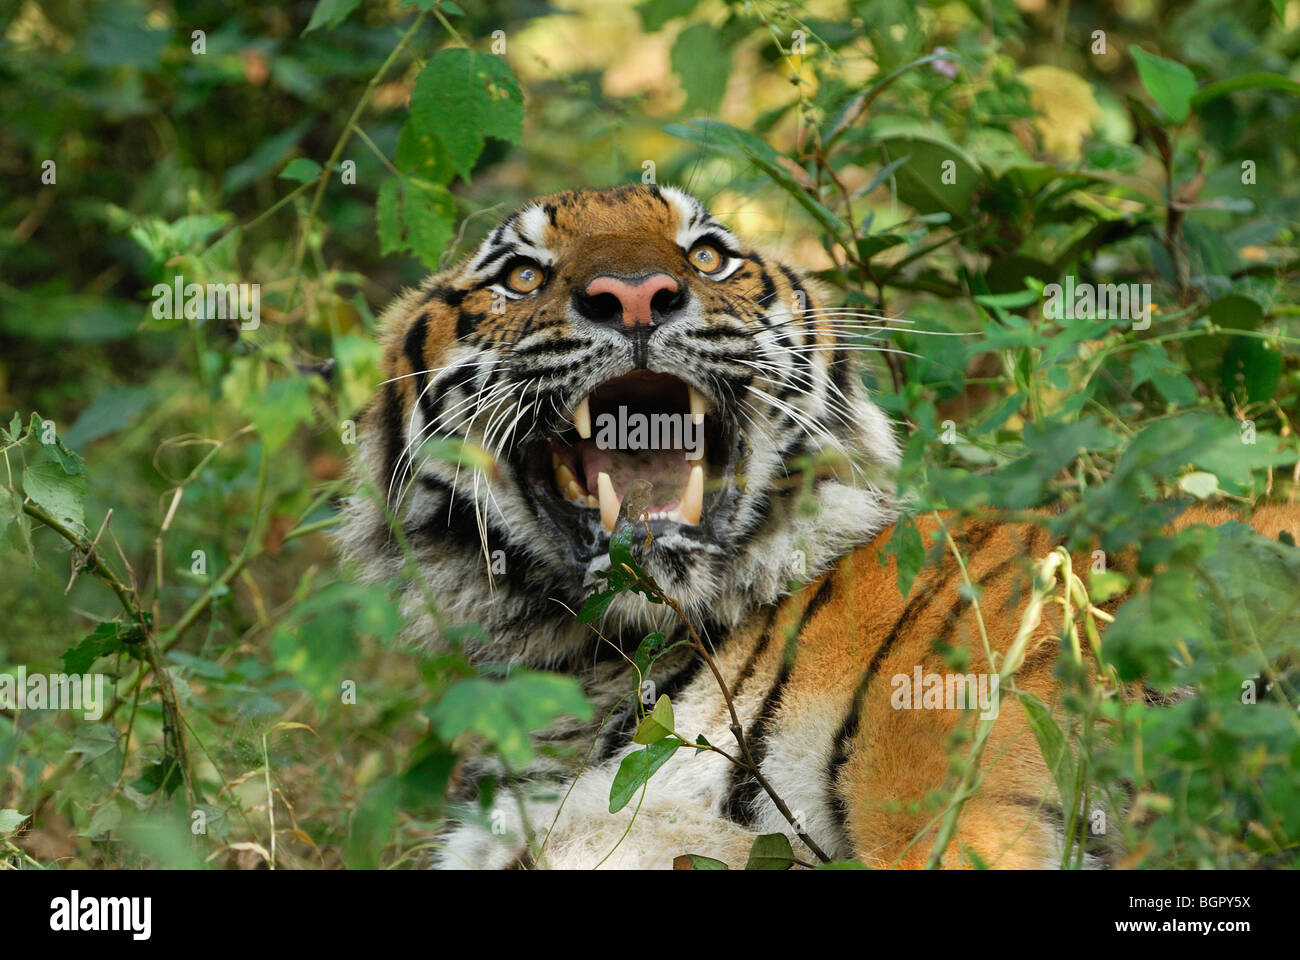 Tiger (Panthera tigris), adult growling, Thailand - Stock Image